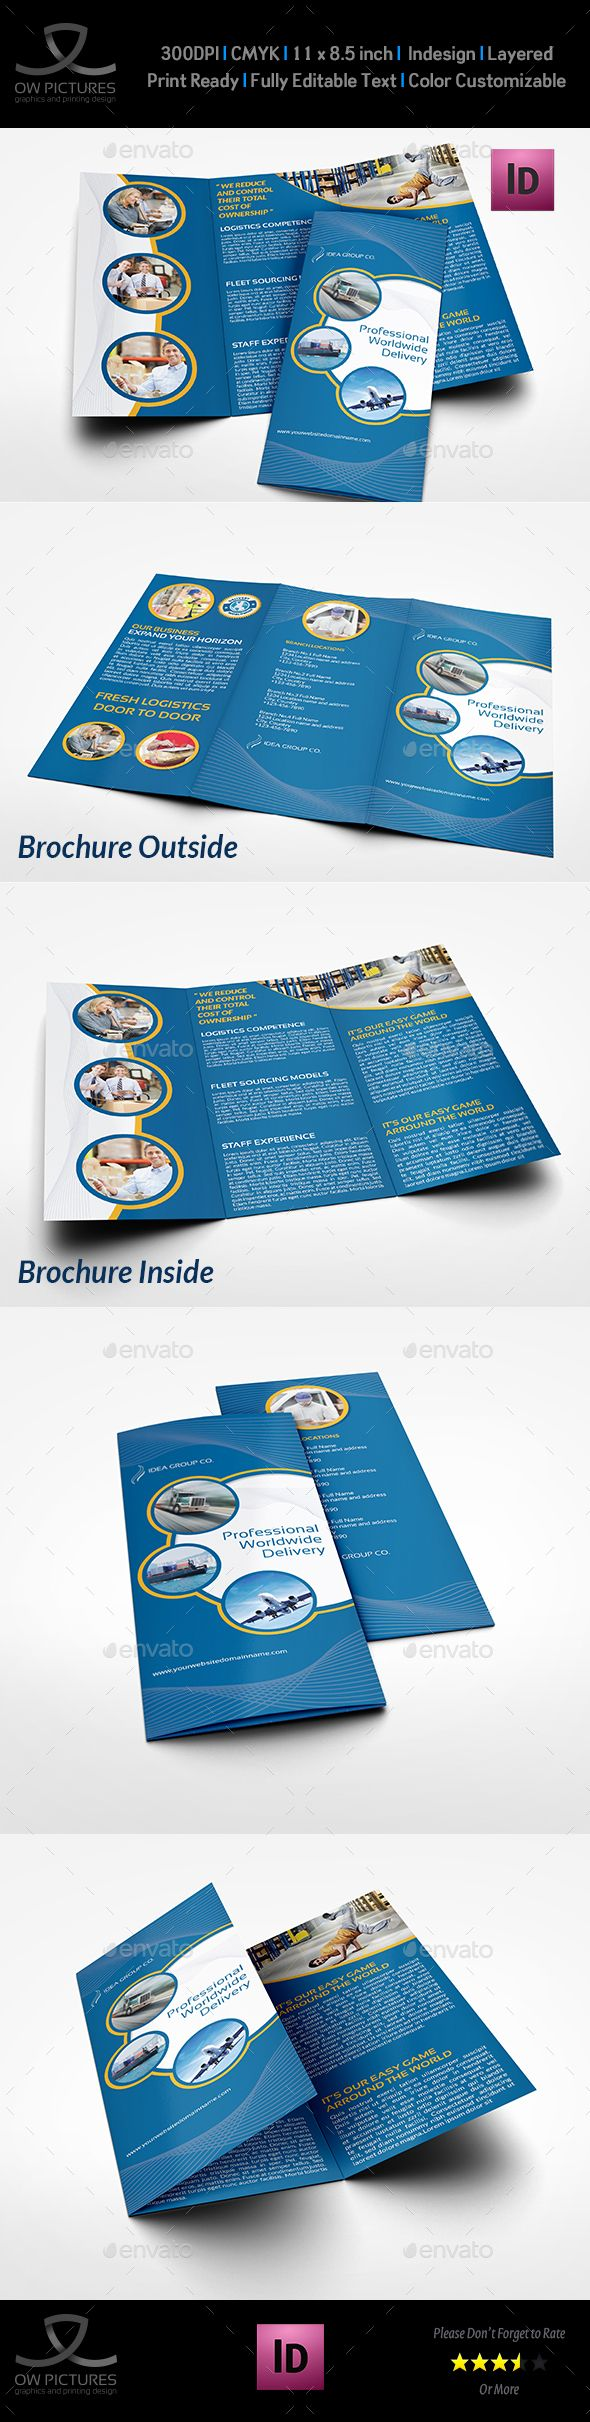 indesign trifold brochure template